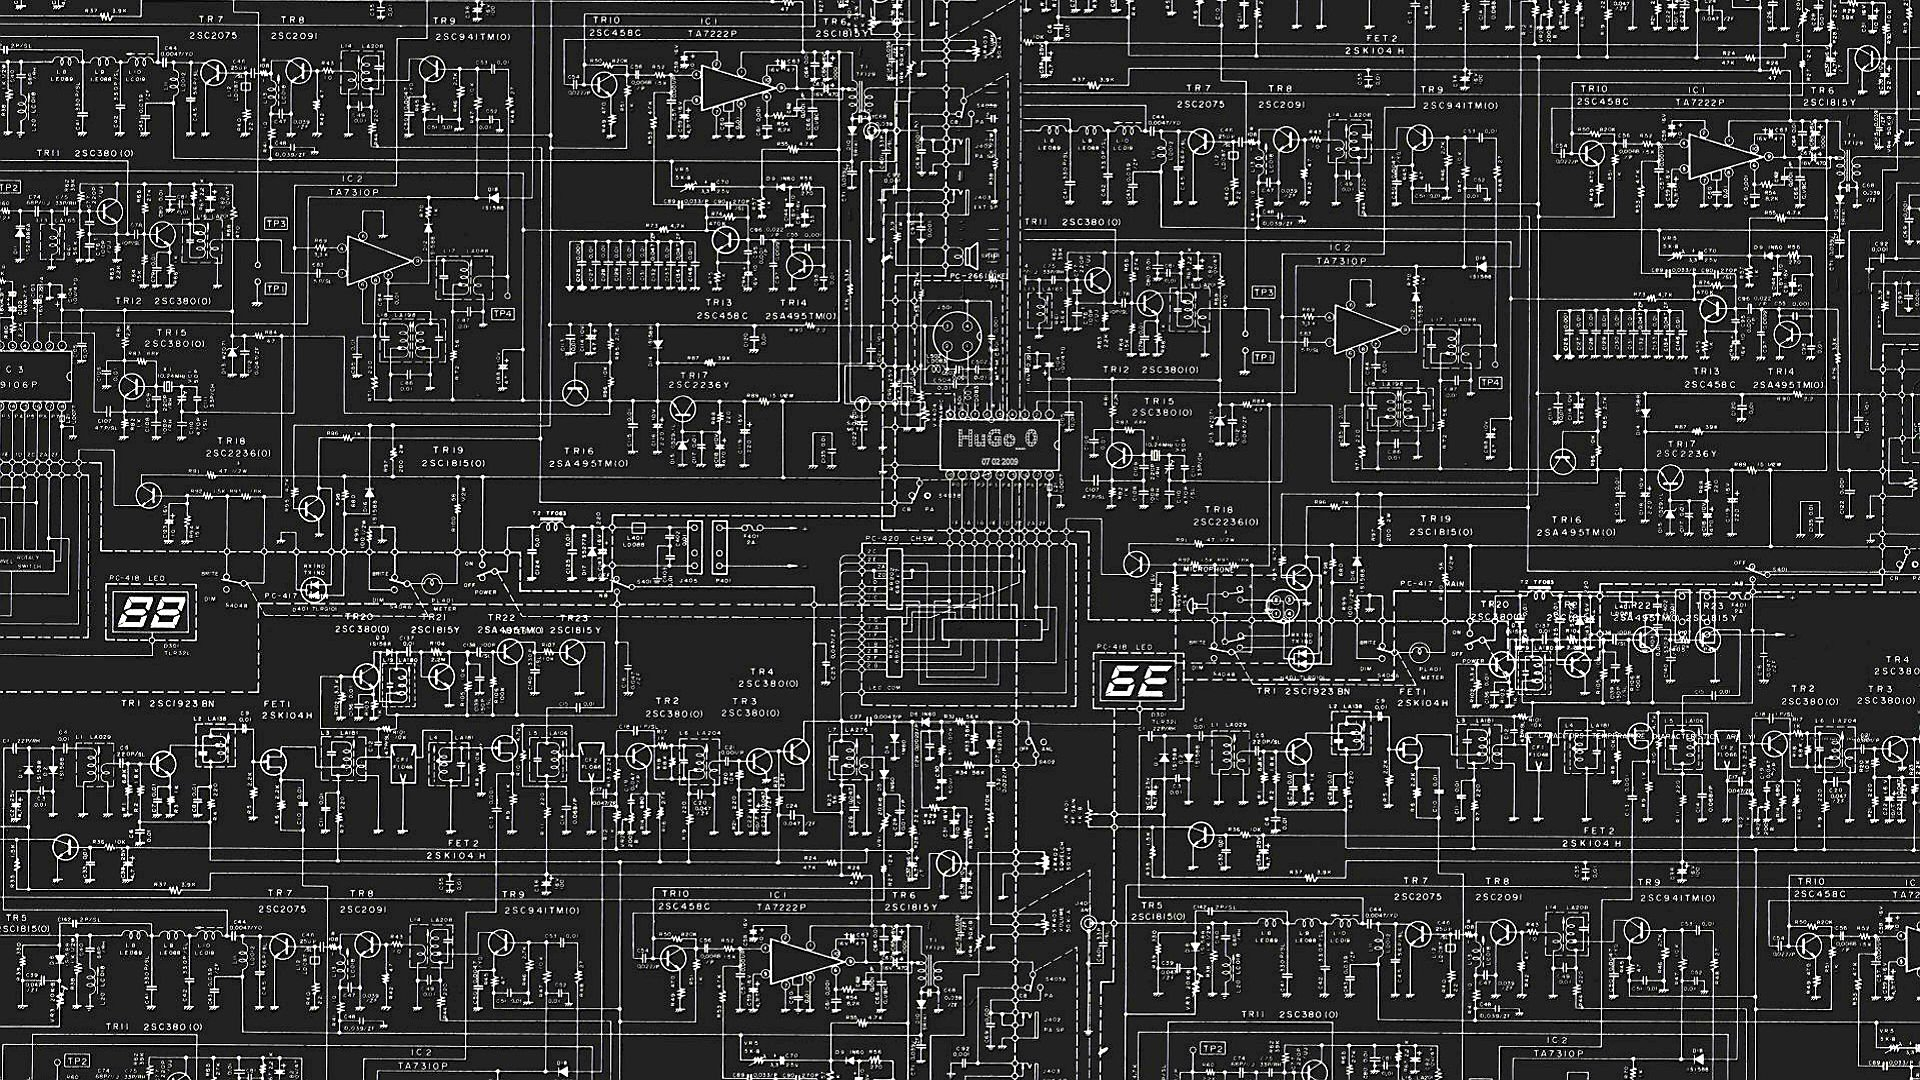 computer engineering science tech wallpaper background